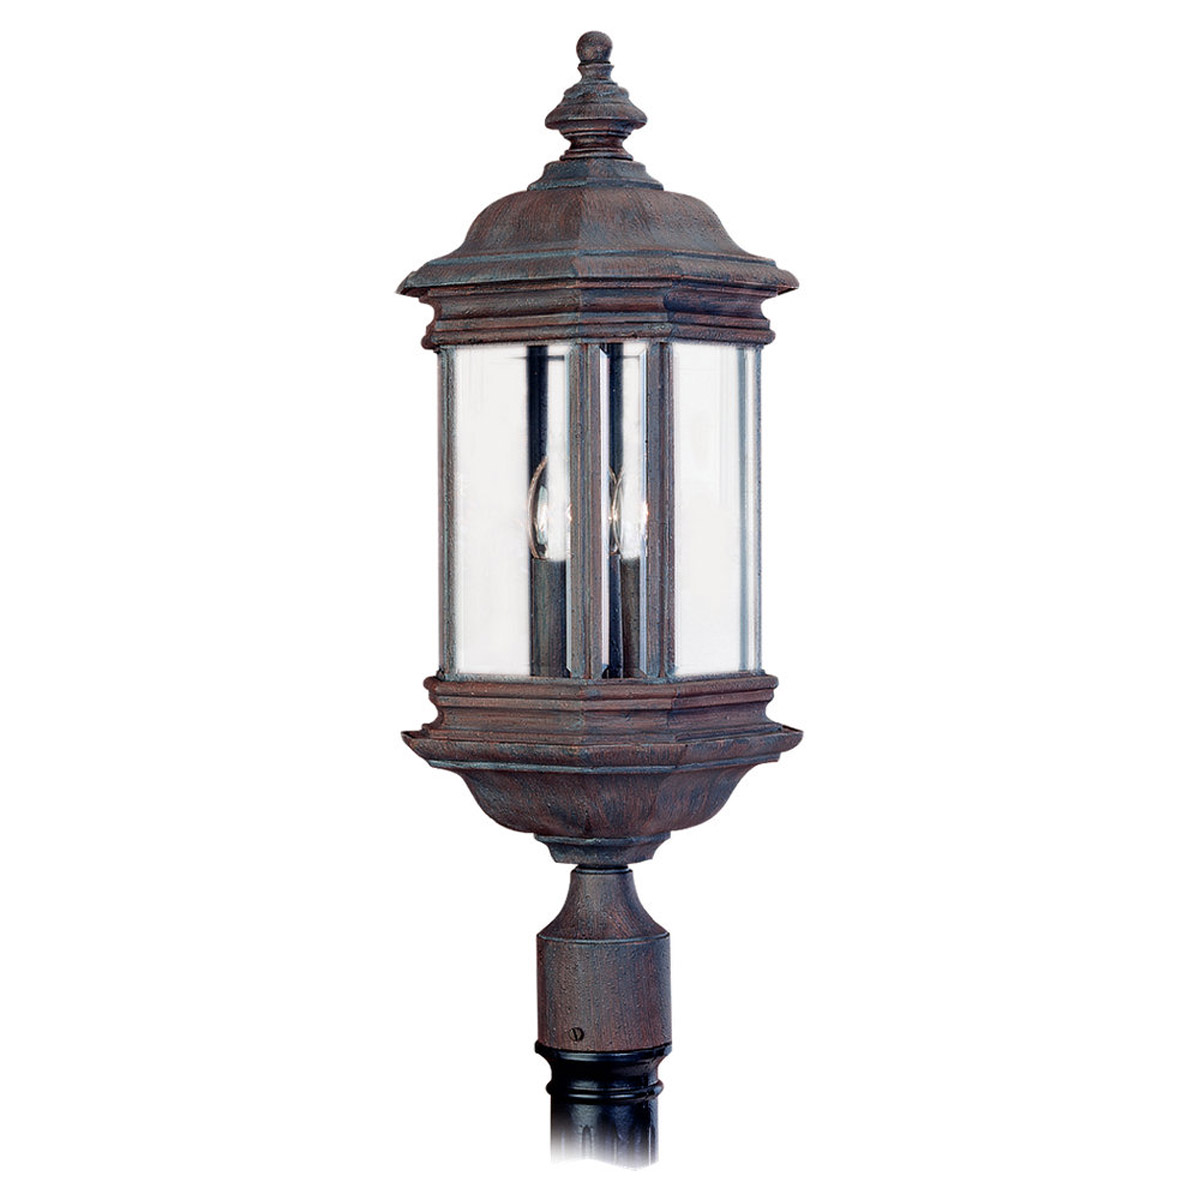 Sea Gull Lighting Hill Gate 3 Light Outdoor Post Lantern in Textured Rust Patina 8238-08